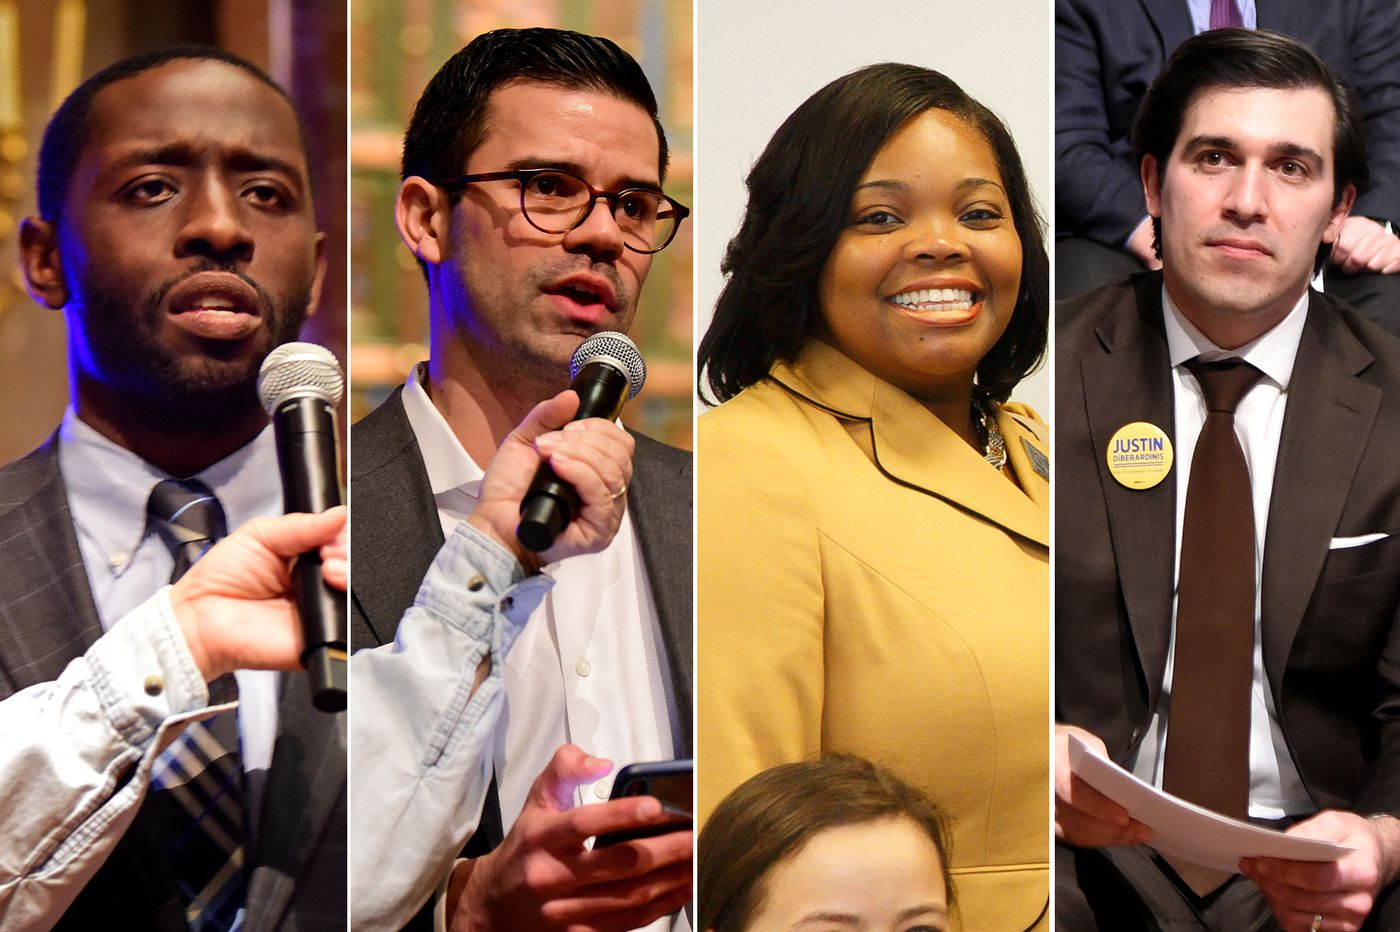 Philly could elect its first millennial to City Council, where the average age is 58